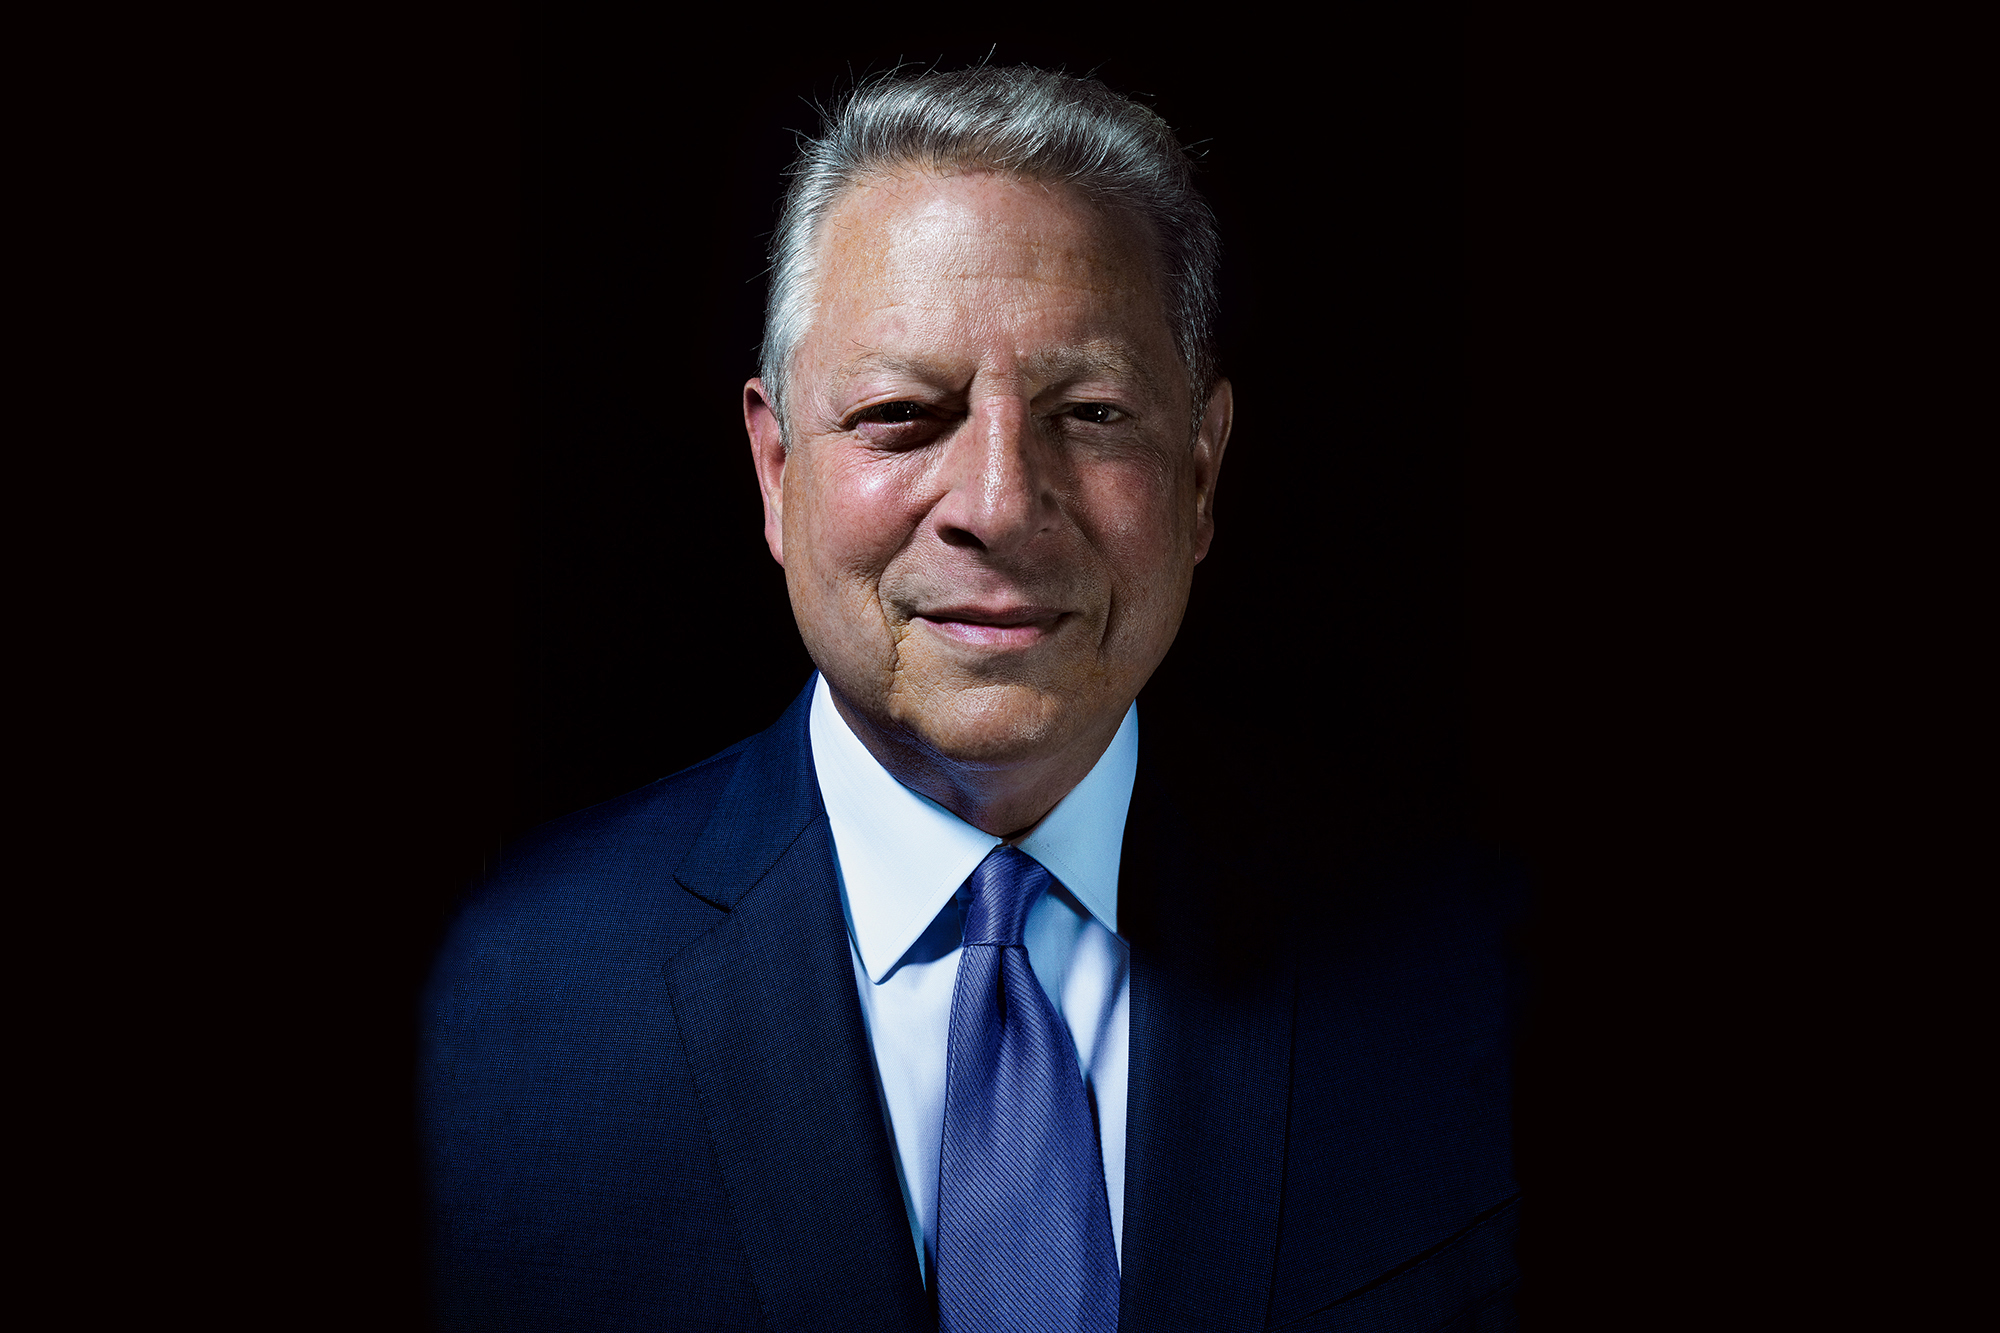 Al Gore's Green-Technology Investment Strategy and the Fight